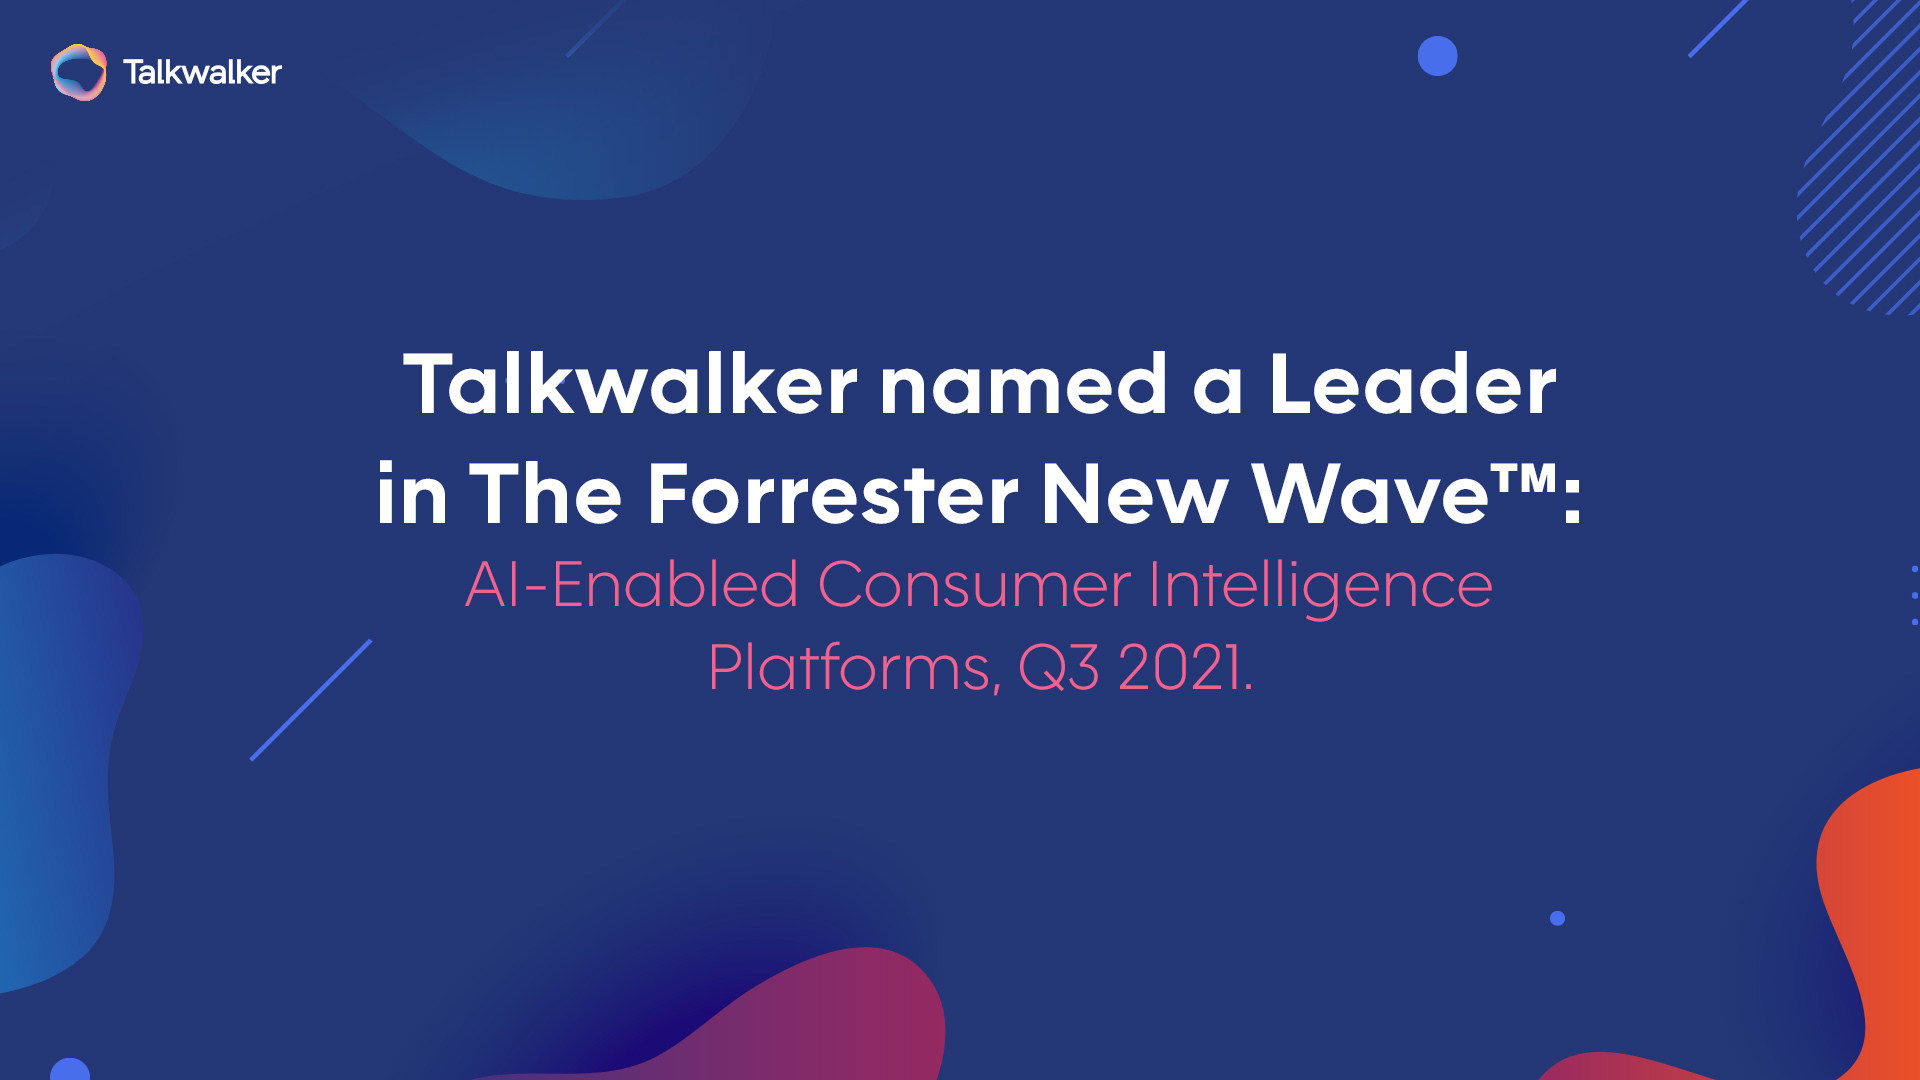 The Forrester New Wave™: AI-Enabled Consumer Intelligence Platforms